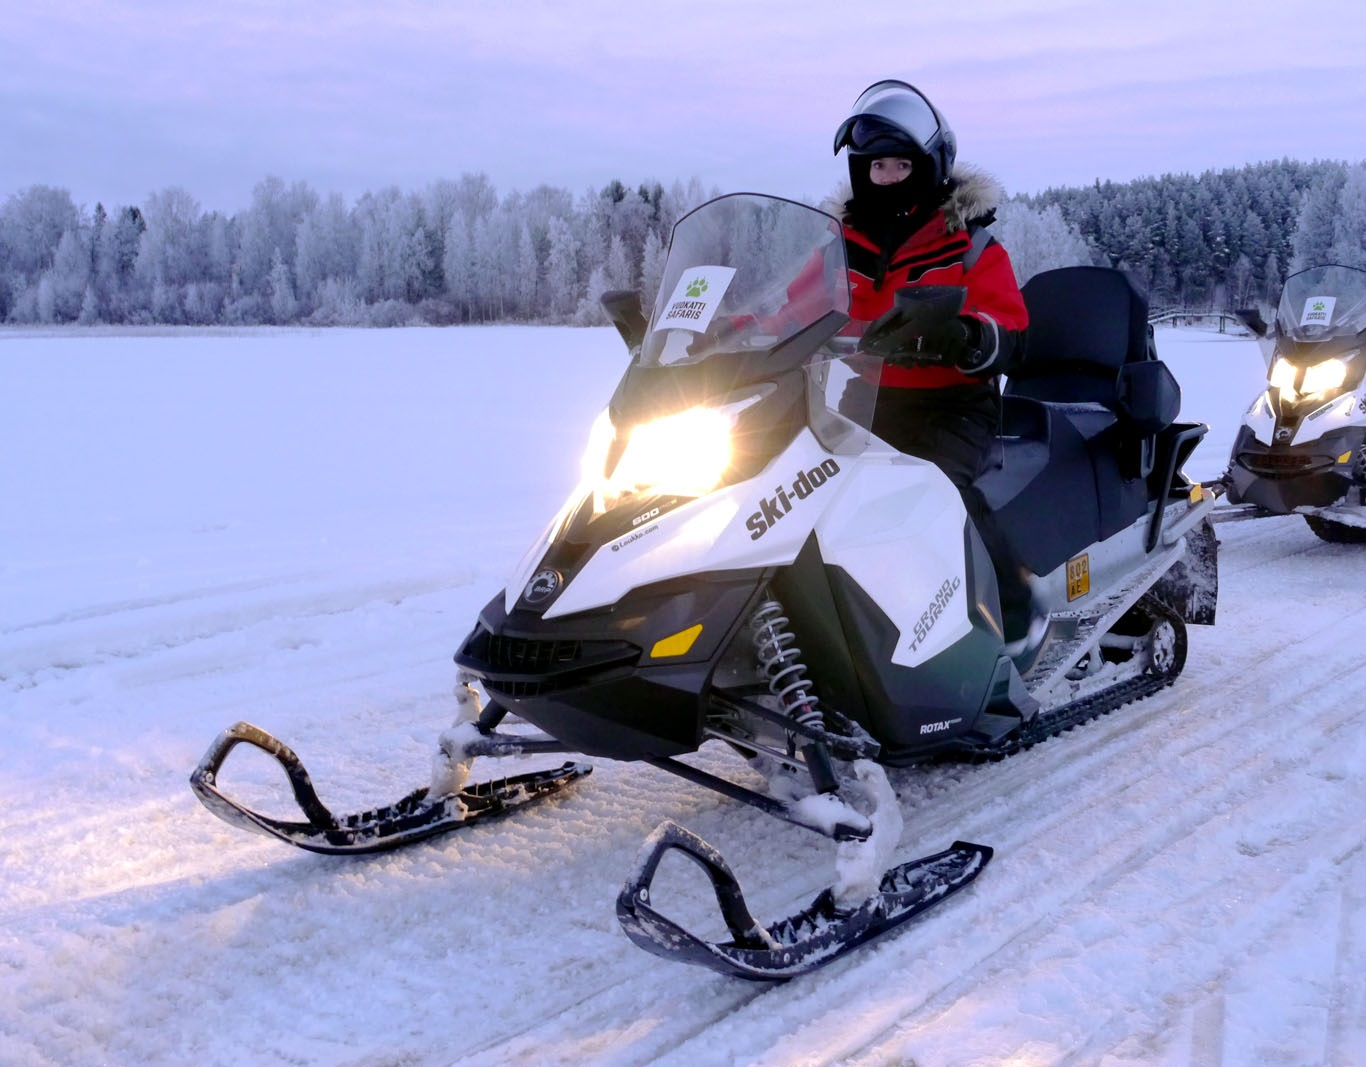 vuokatti-finnland-winter-schneemobil tour-snowmobile-2